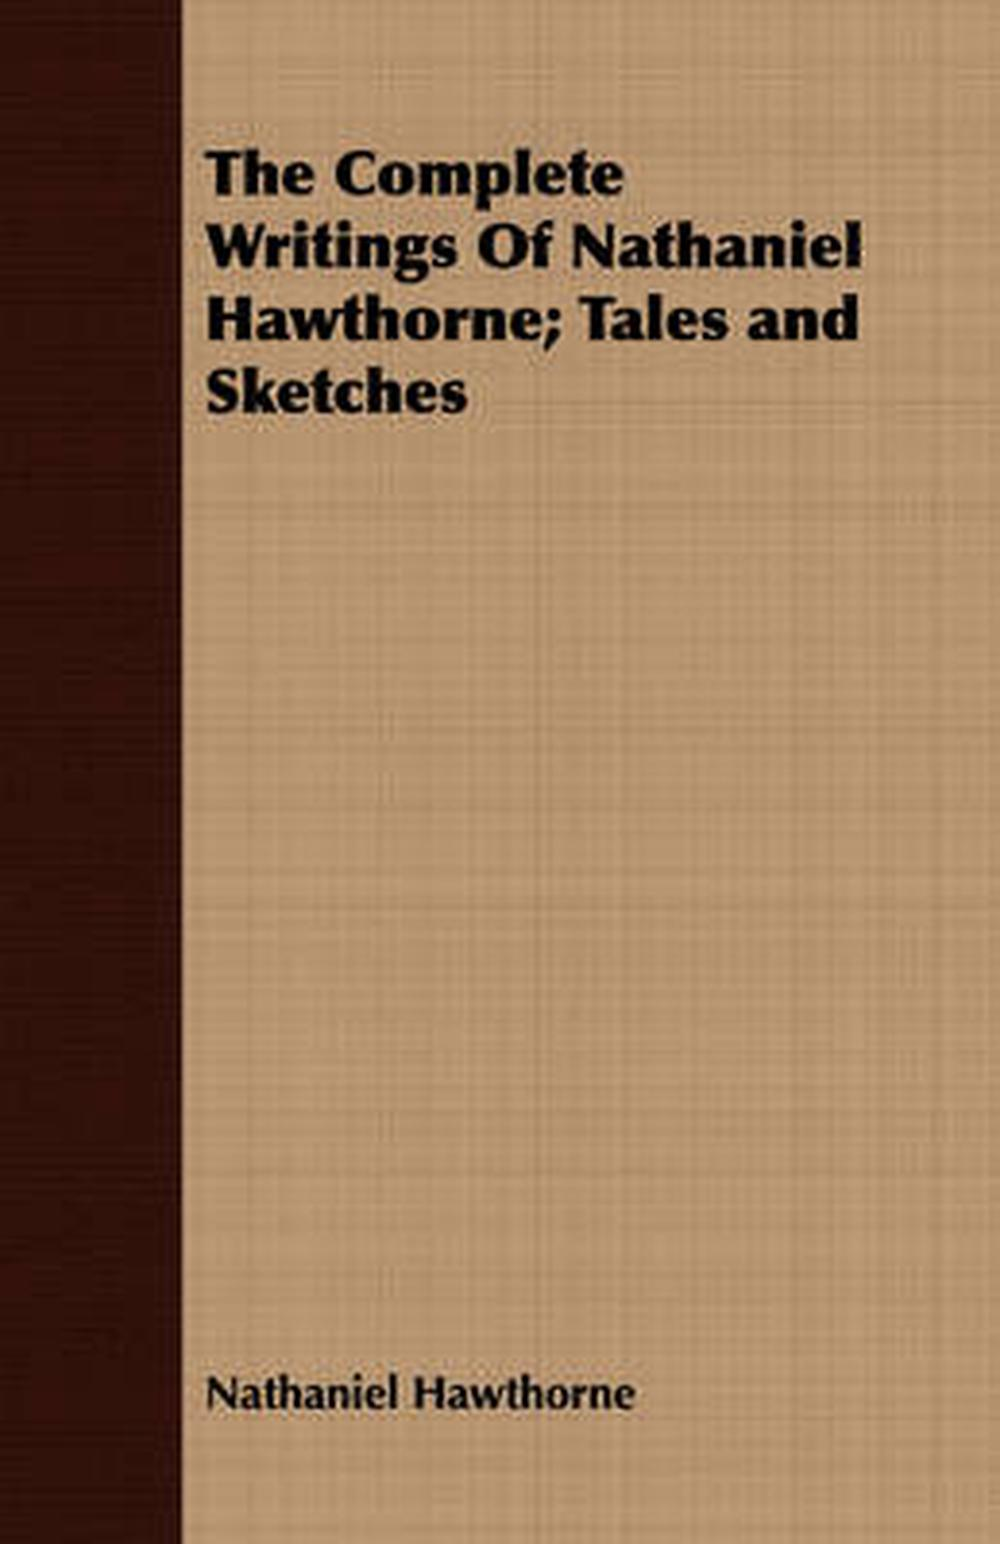 """an analysis of nathaniel hawthornes selected works Conclusion6 works cited7 honestly declaration8 1 introduction in the main part of the following paper with the topic """"two mad scientists: a comparison of nathaniel hawthorne's short stories """"the birthmark"""" and rappaccini's daughter"""" i will offer a comparison of selected."""